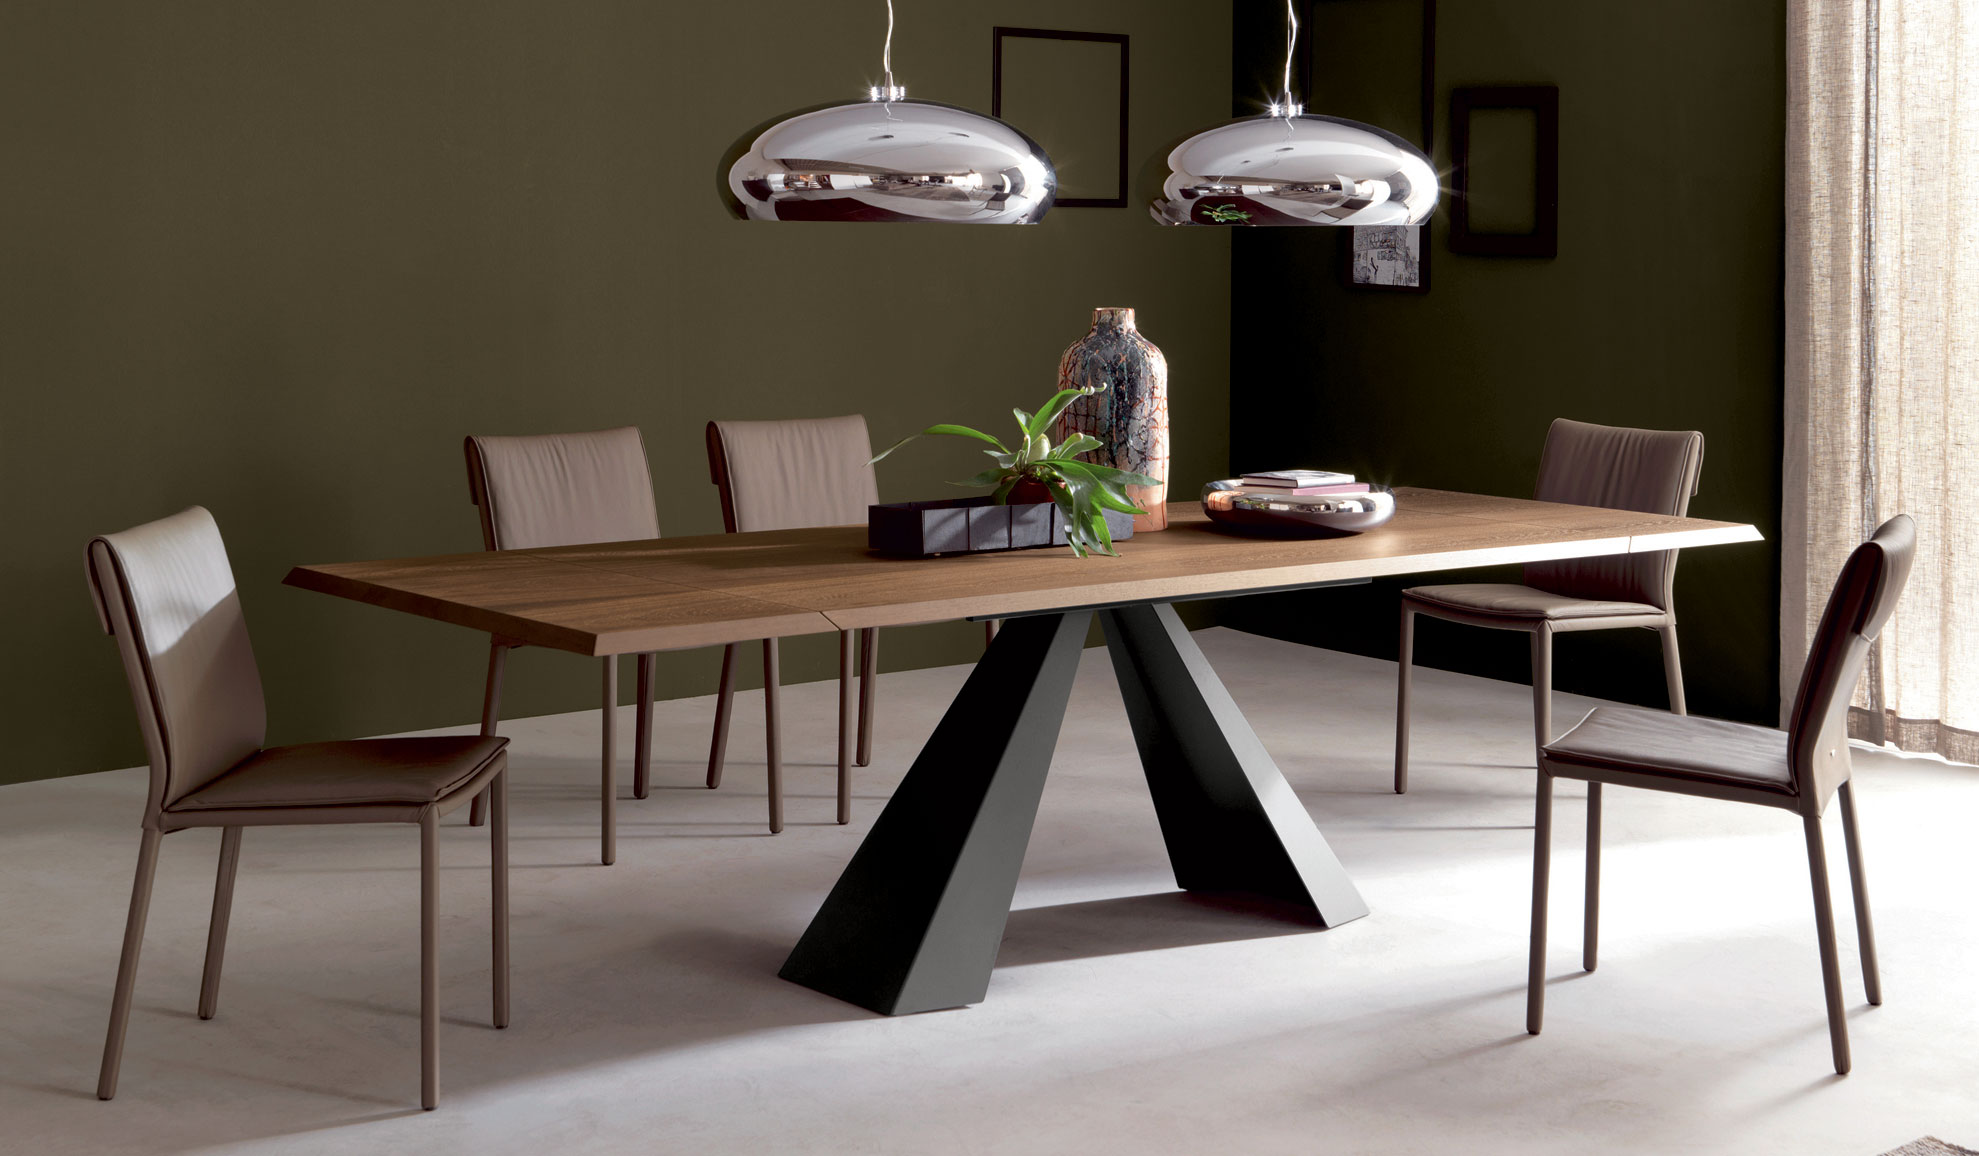 Mesa comedor extensible eliot cattelan en for Muebles de diseno italiano